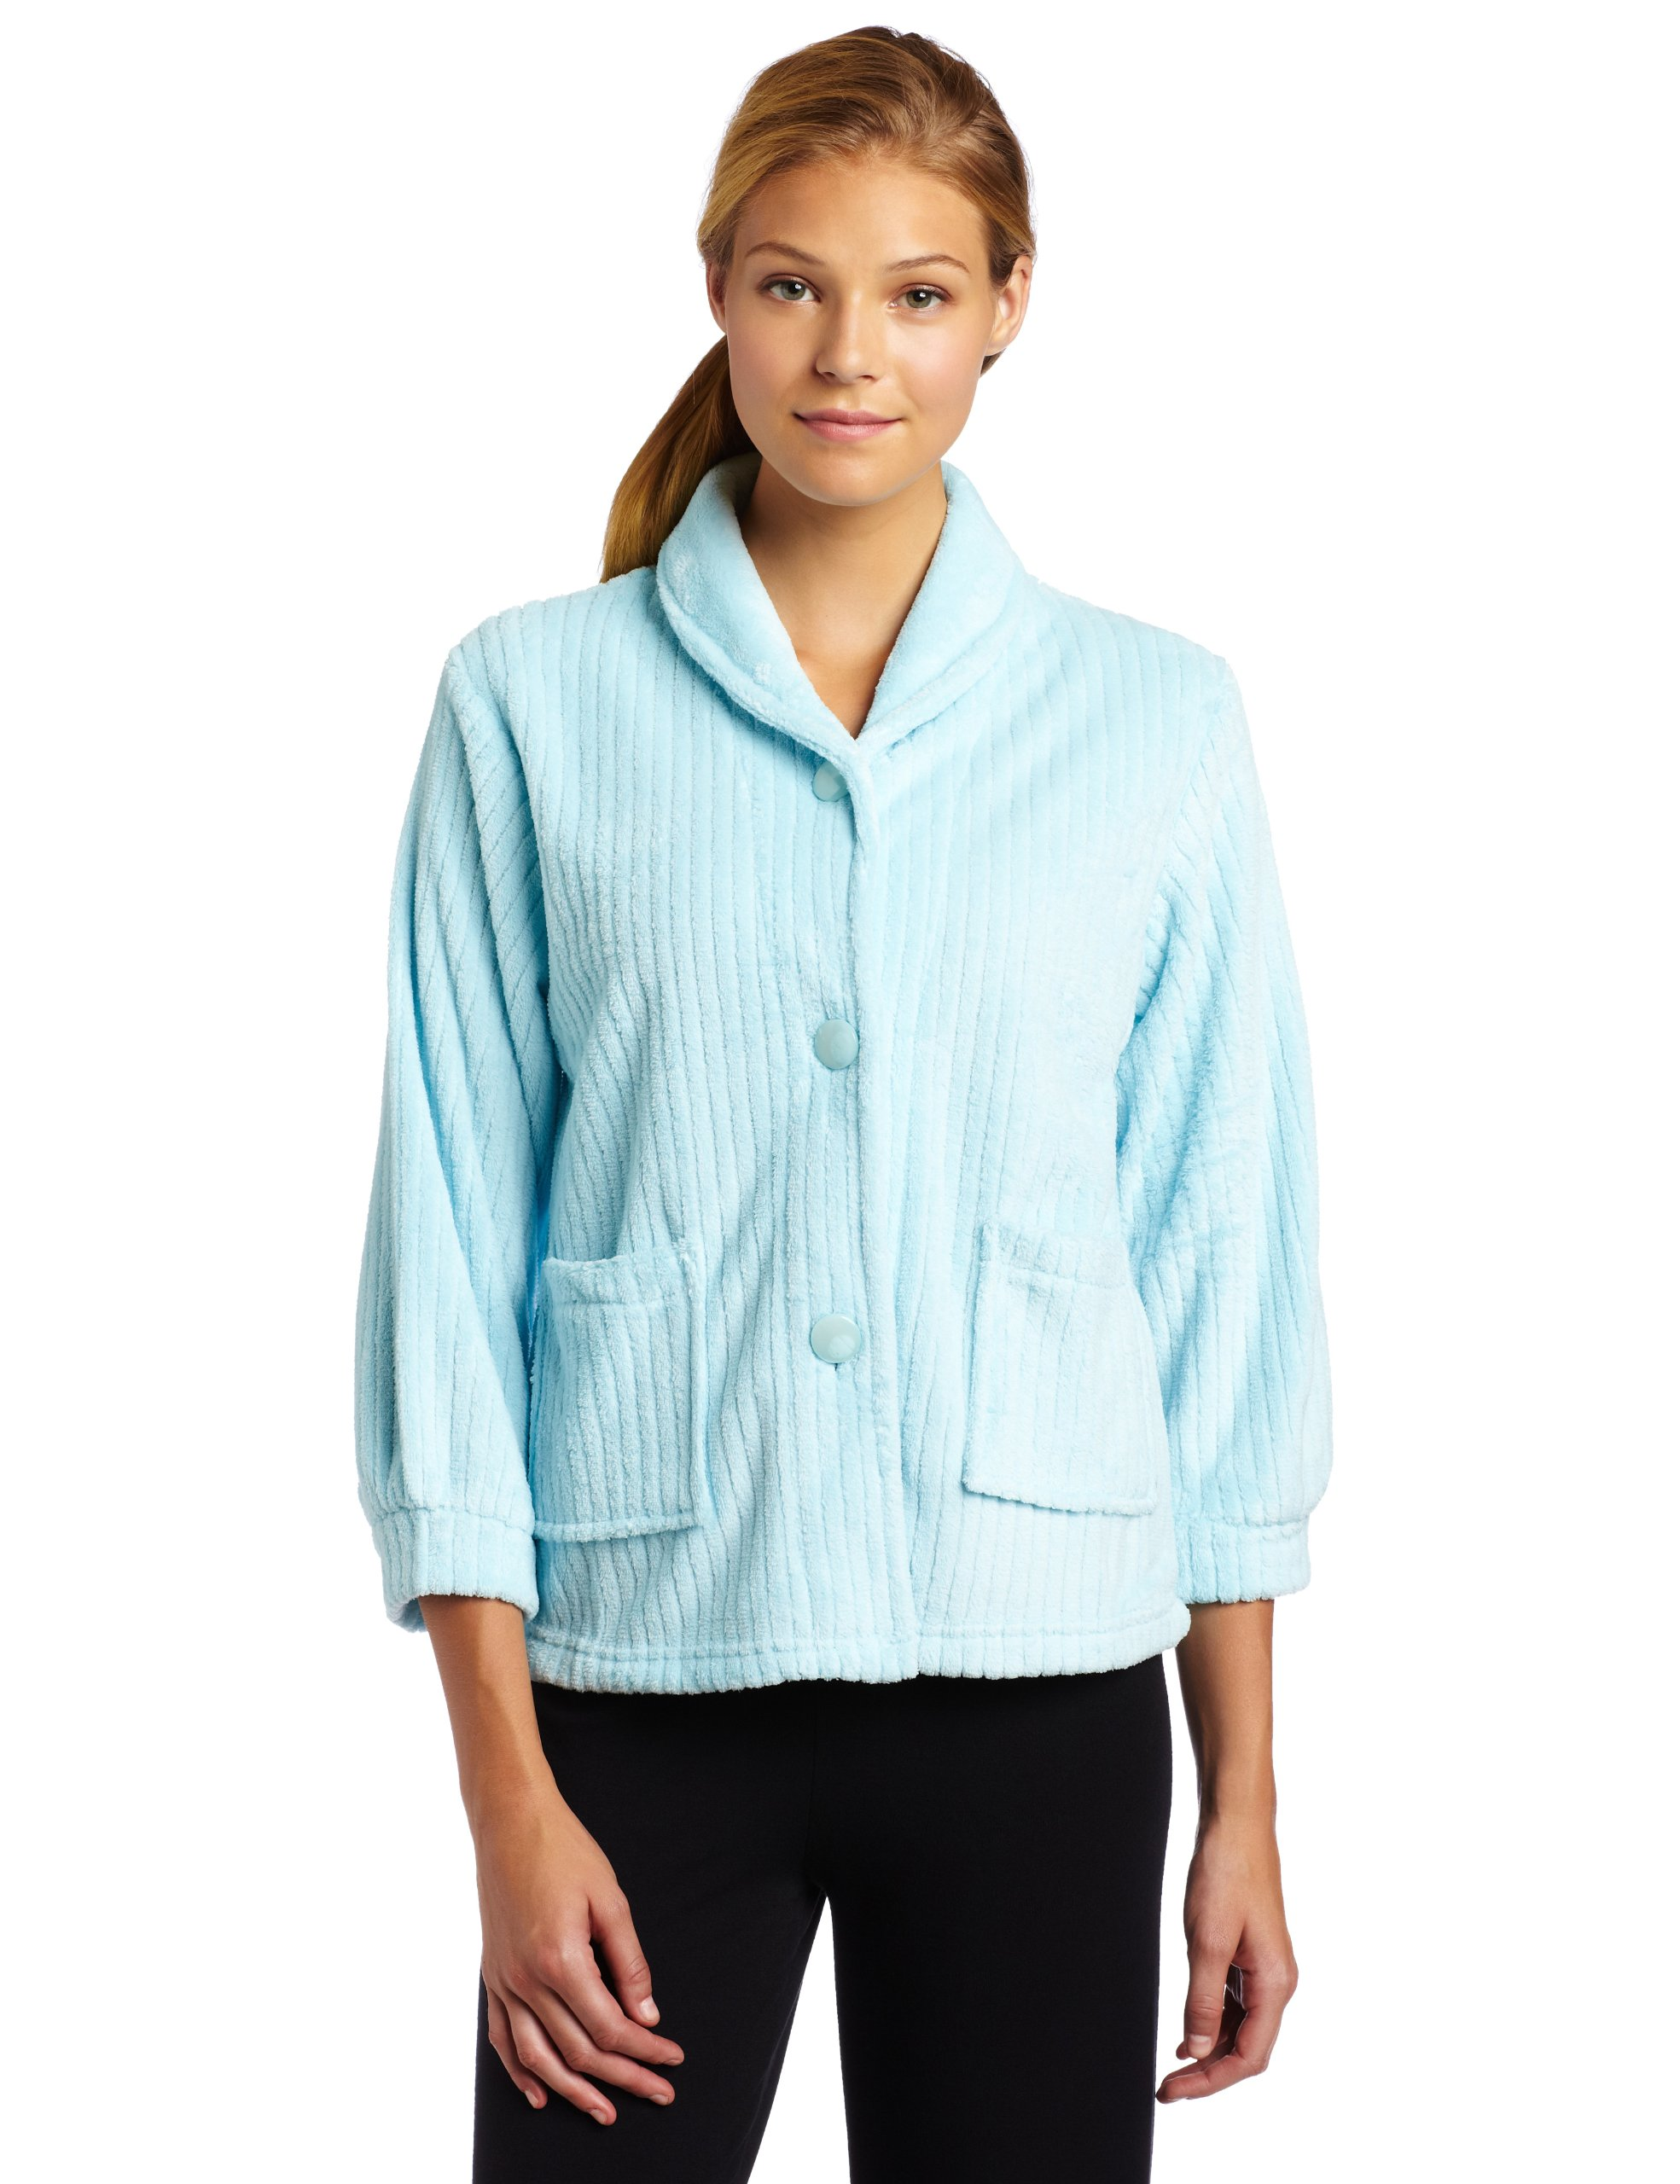 Casual Moments Womens Bed Jacket With Shawl Collar, Light Aqua, Small